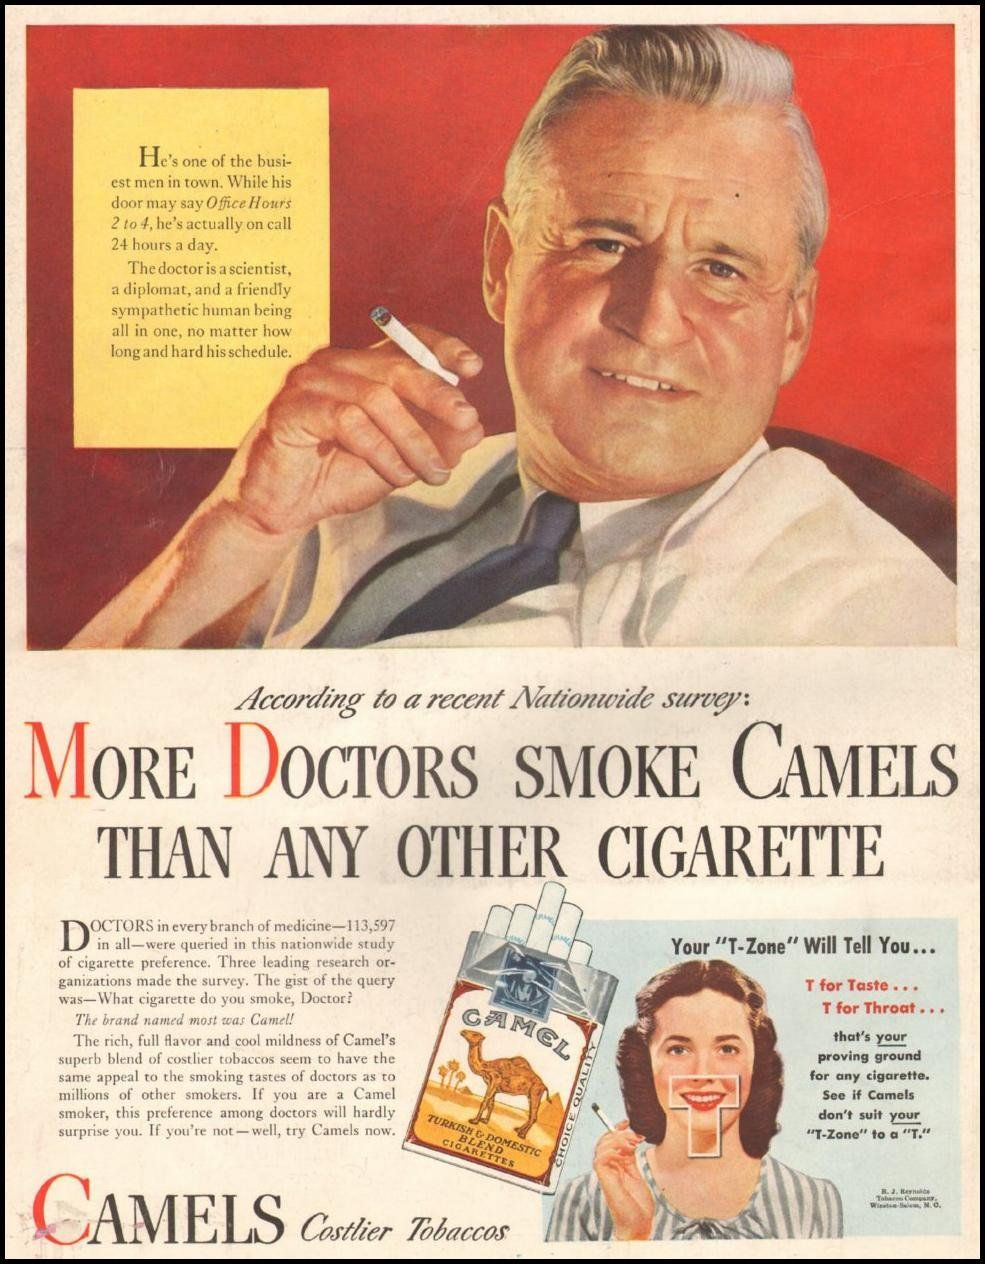 Oh These Ut Worst Than That This Vintage Advertisement Encourages Smoking Boasting Because More Doctors Smoke Camel Cigarettes Then They Must Be